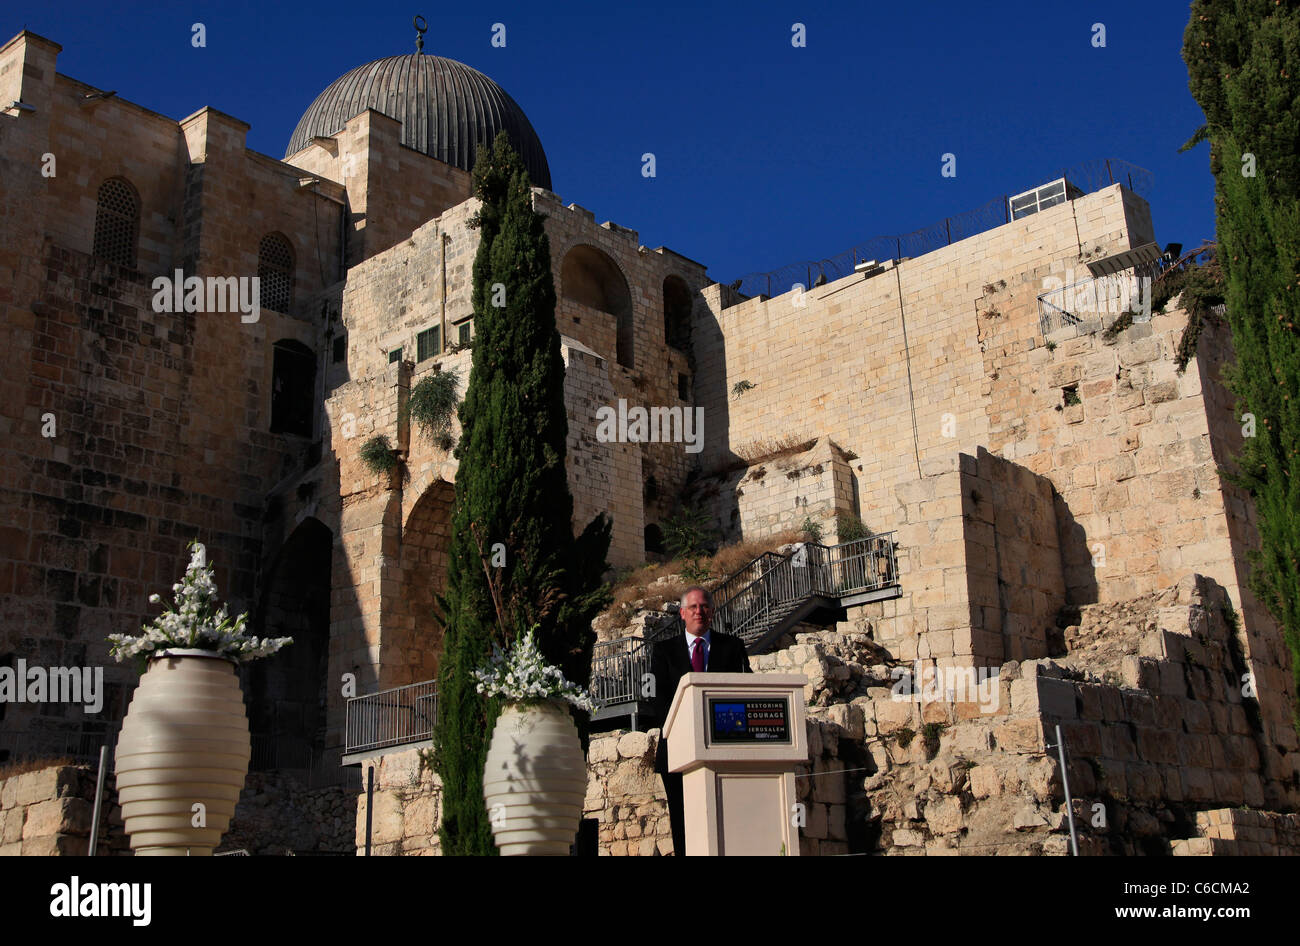 US radio personality Glenn Beck hosts rally supporting Israel in the Old city of  Jerusalem Israel - Stock Image